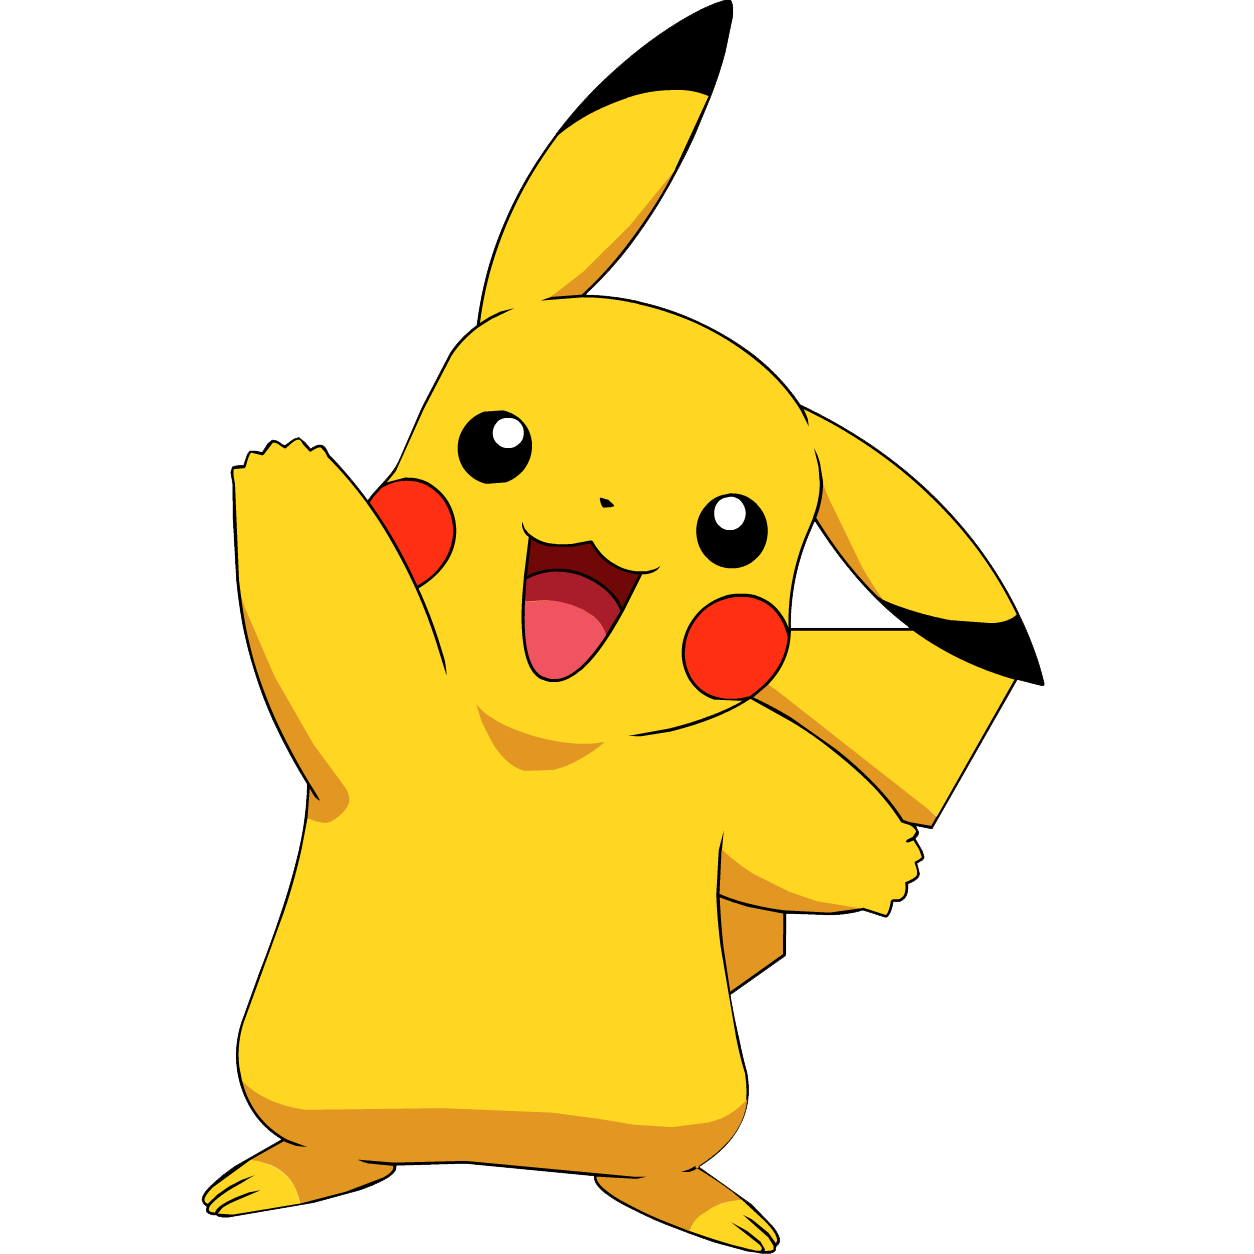 Lightning svg pikachu. Transparent background png mart